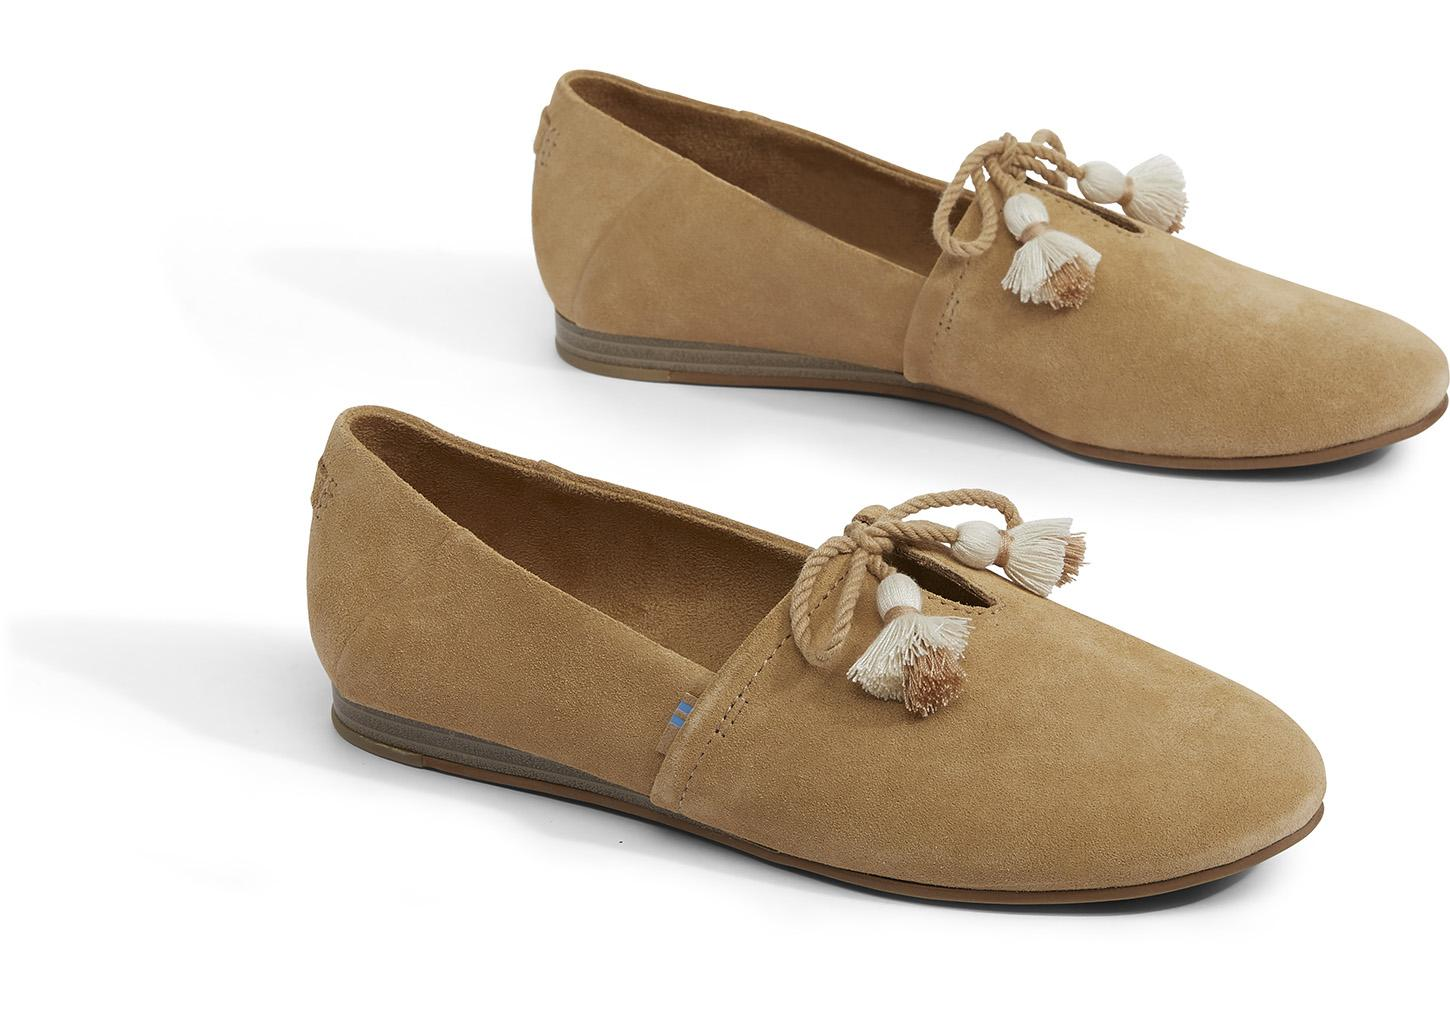 d976be84ecc99 TOMS - Natural Toffee Suede Kelli Women's Flats - Lyst. View fullscreen